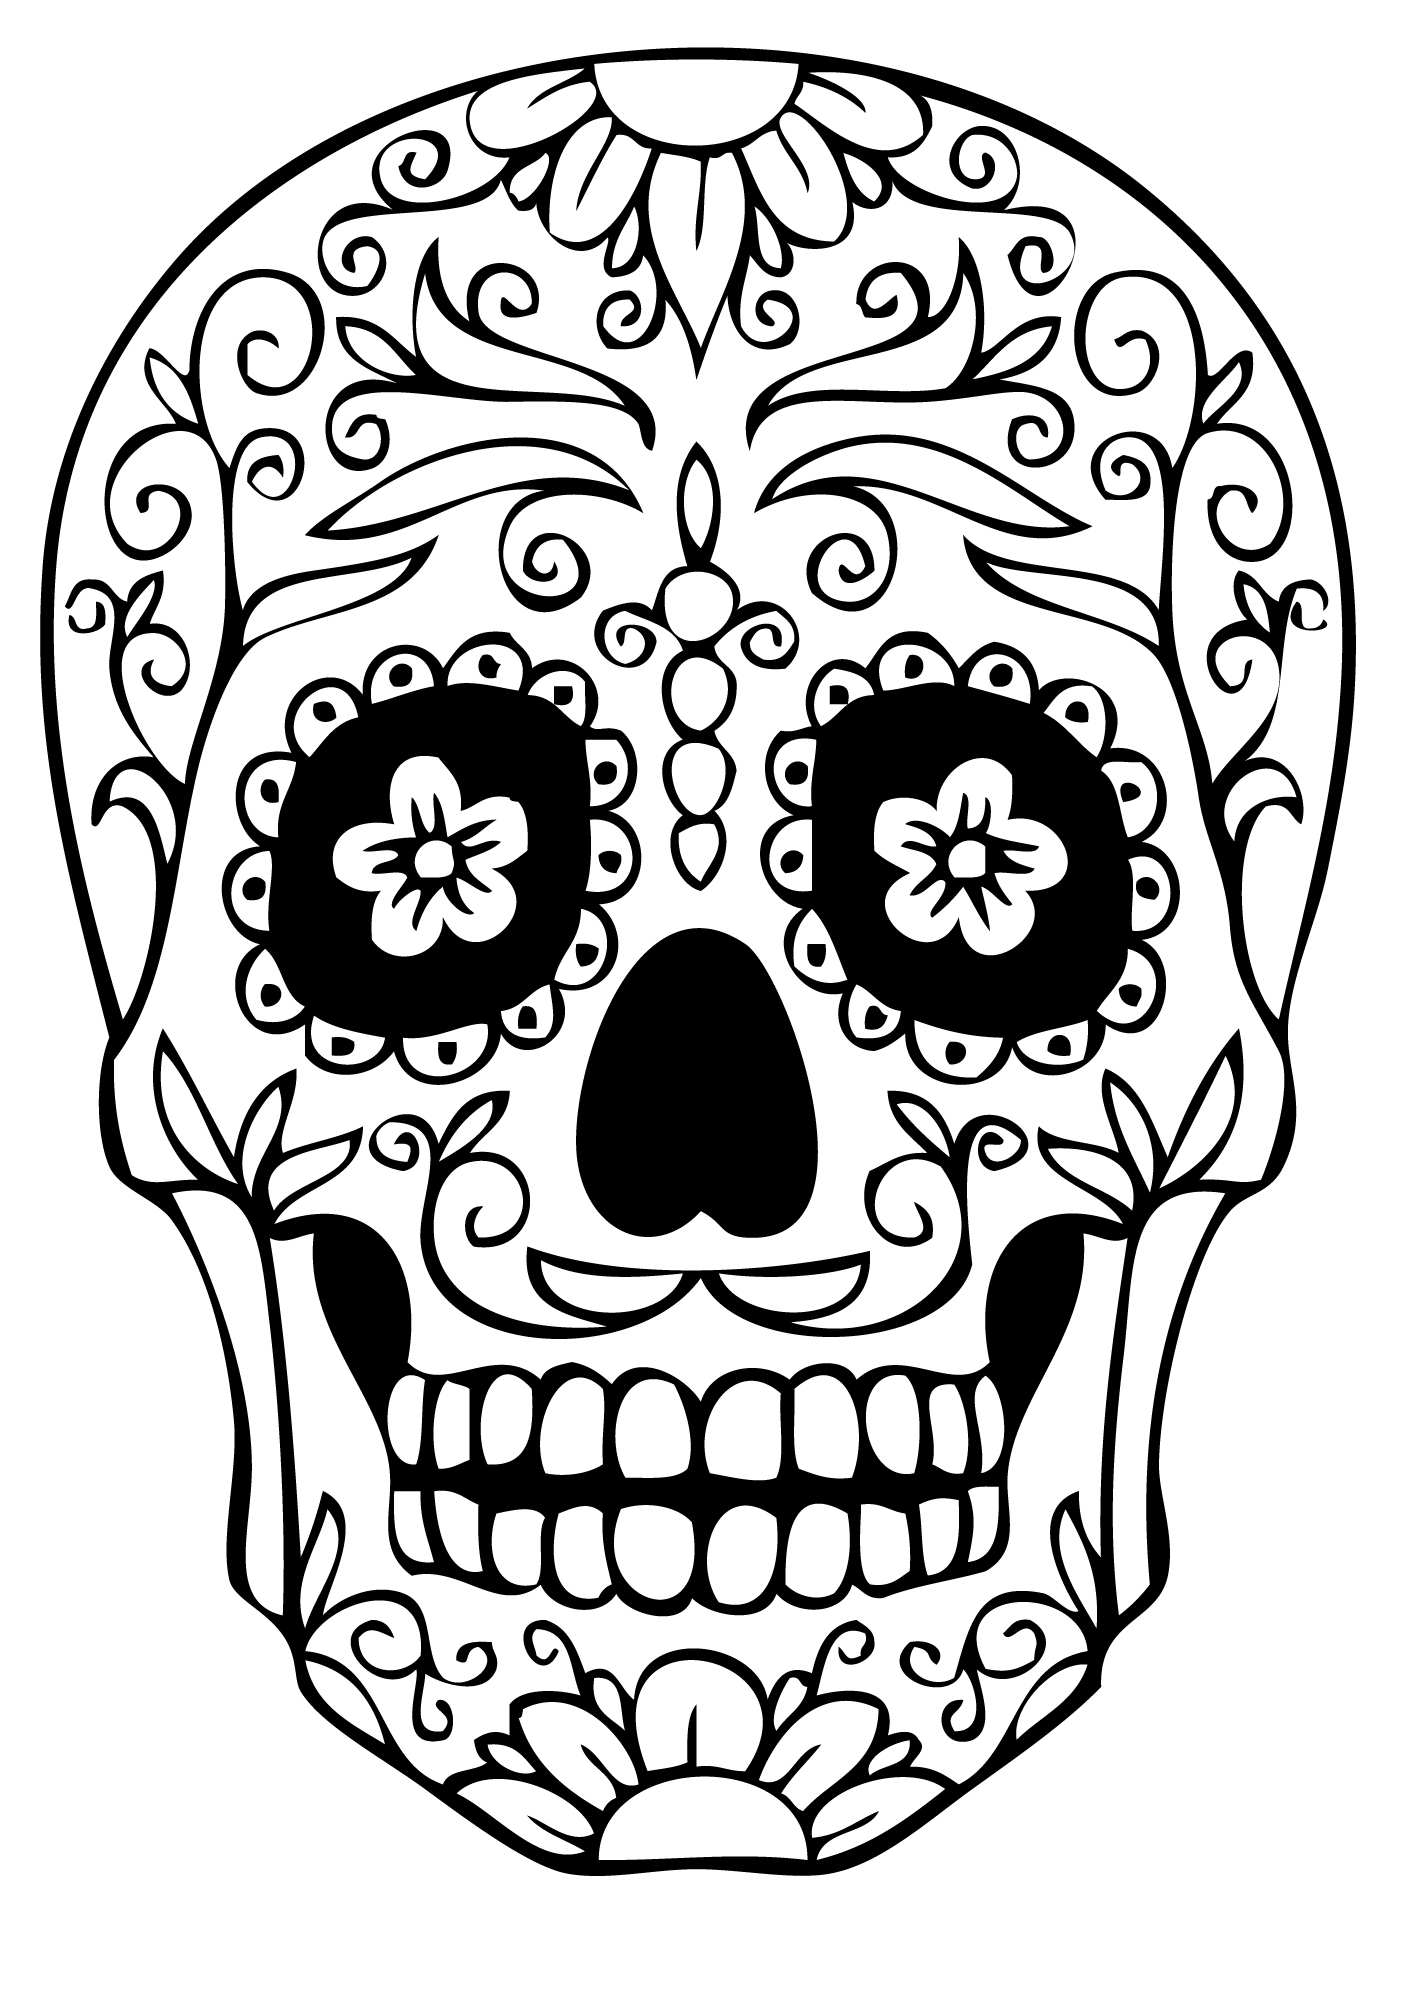 day of dead coloring pages day of the dead coloring pages el dia de los muertos 4 el coloring of day dead pages